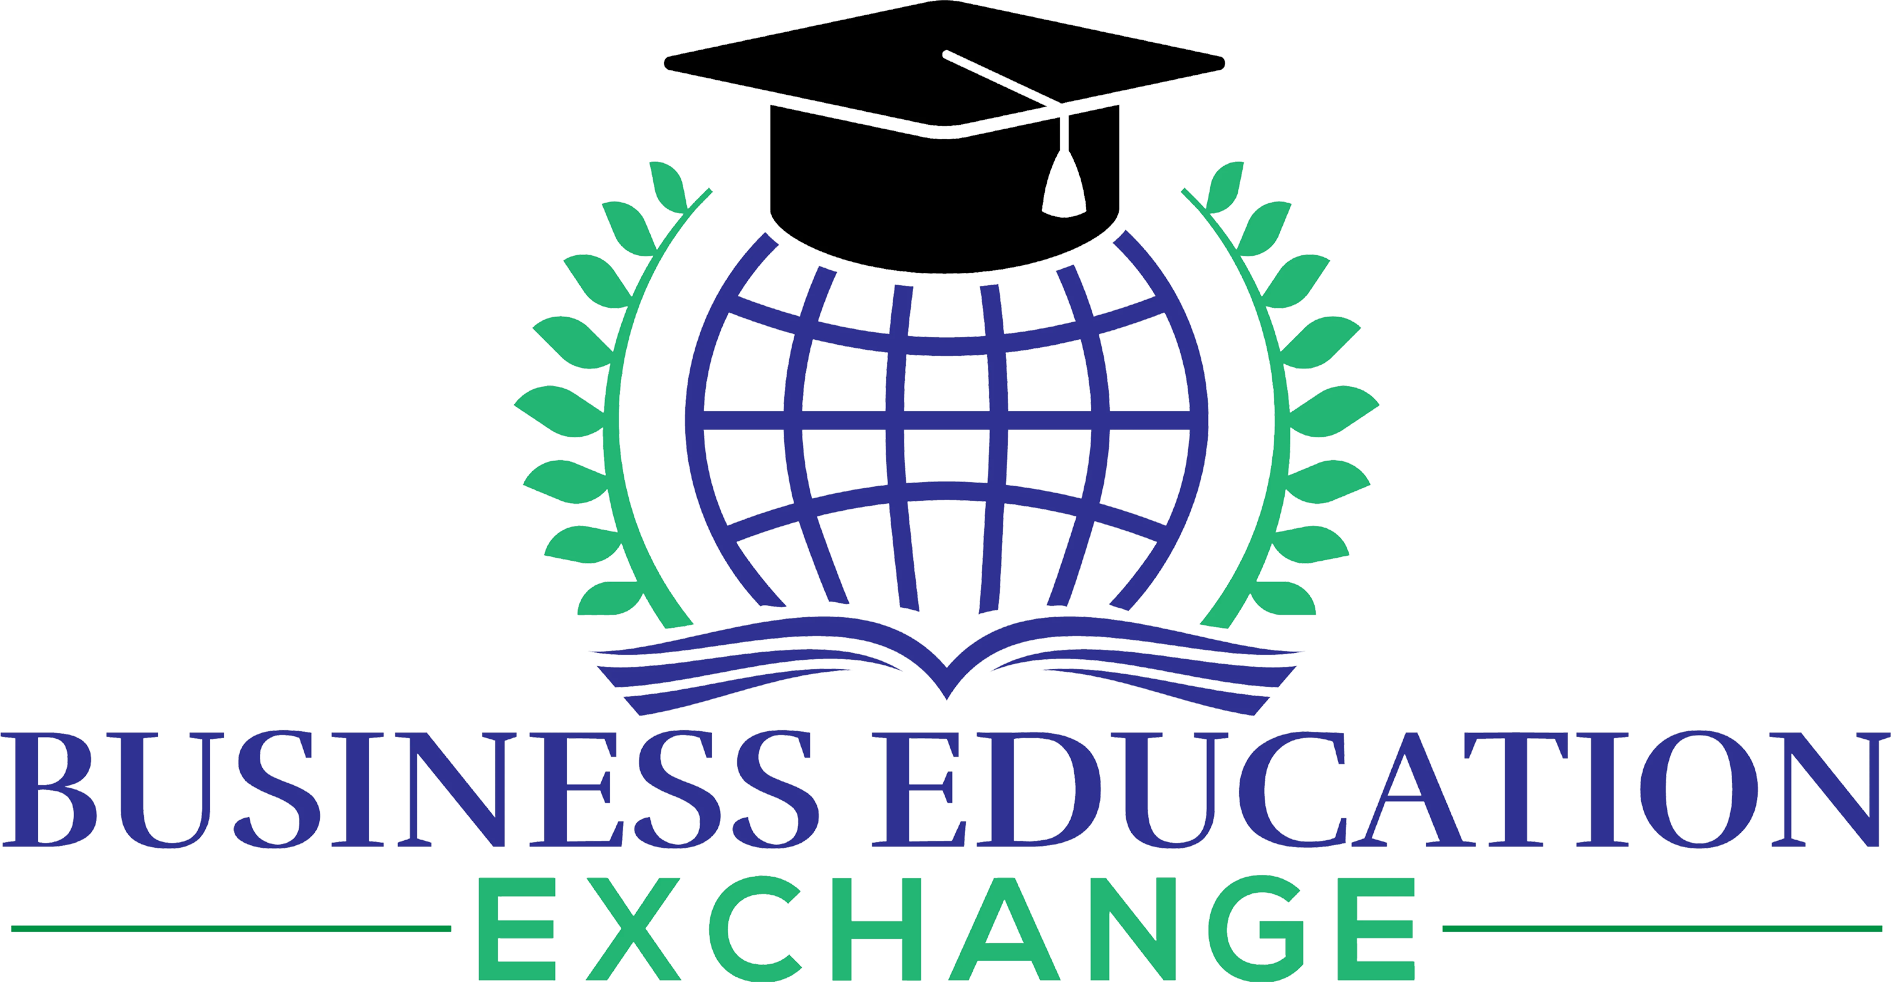 Business Education Exchange